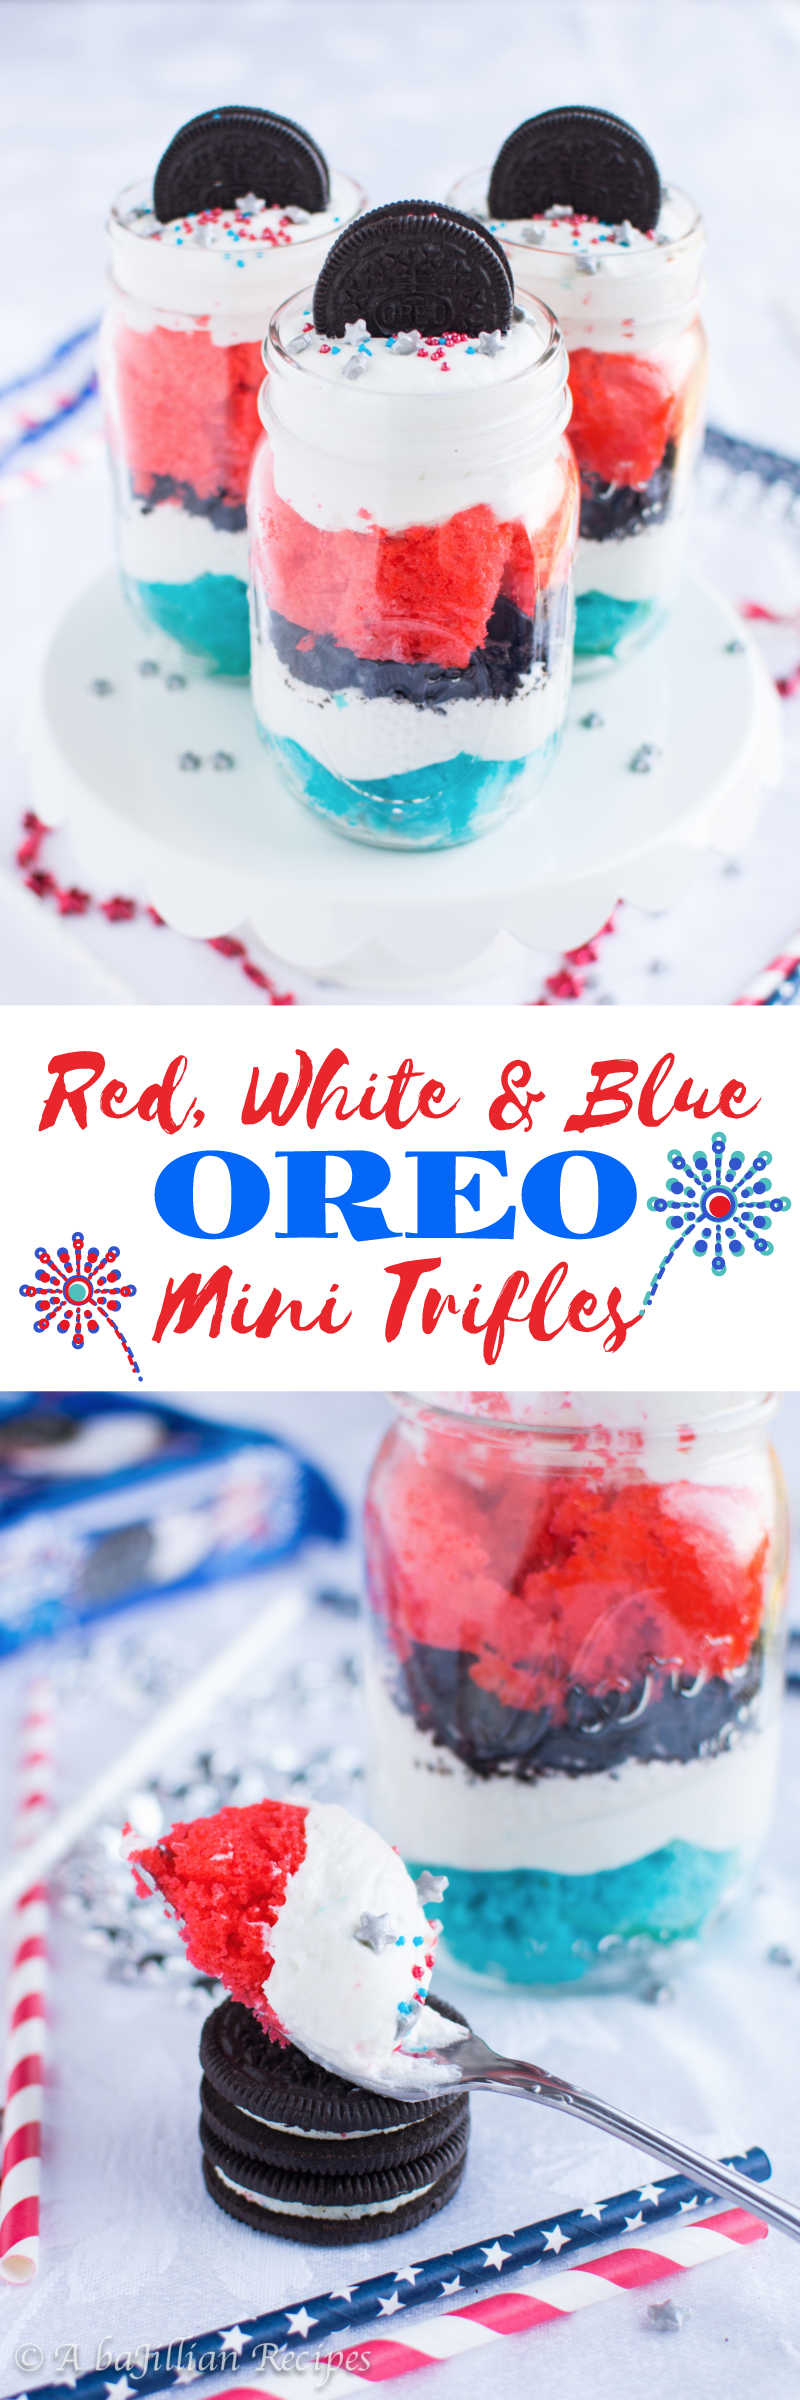 Red White And Blue Oreo Mini Trifles (collage)